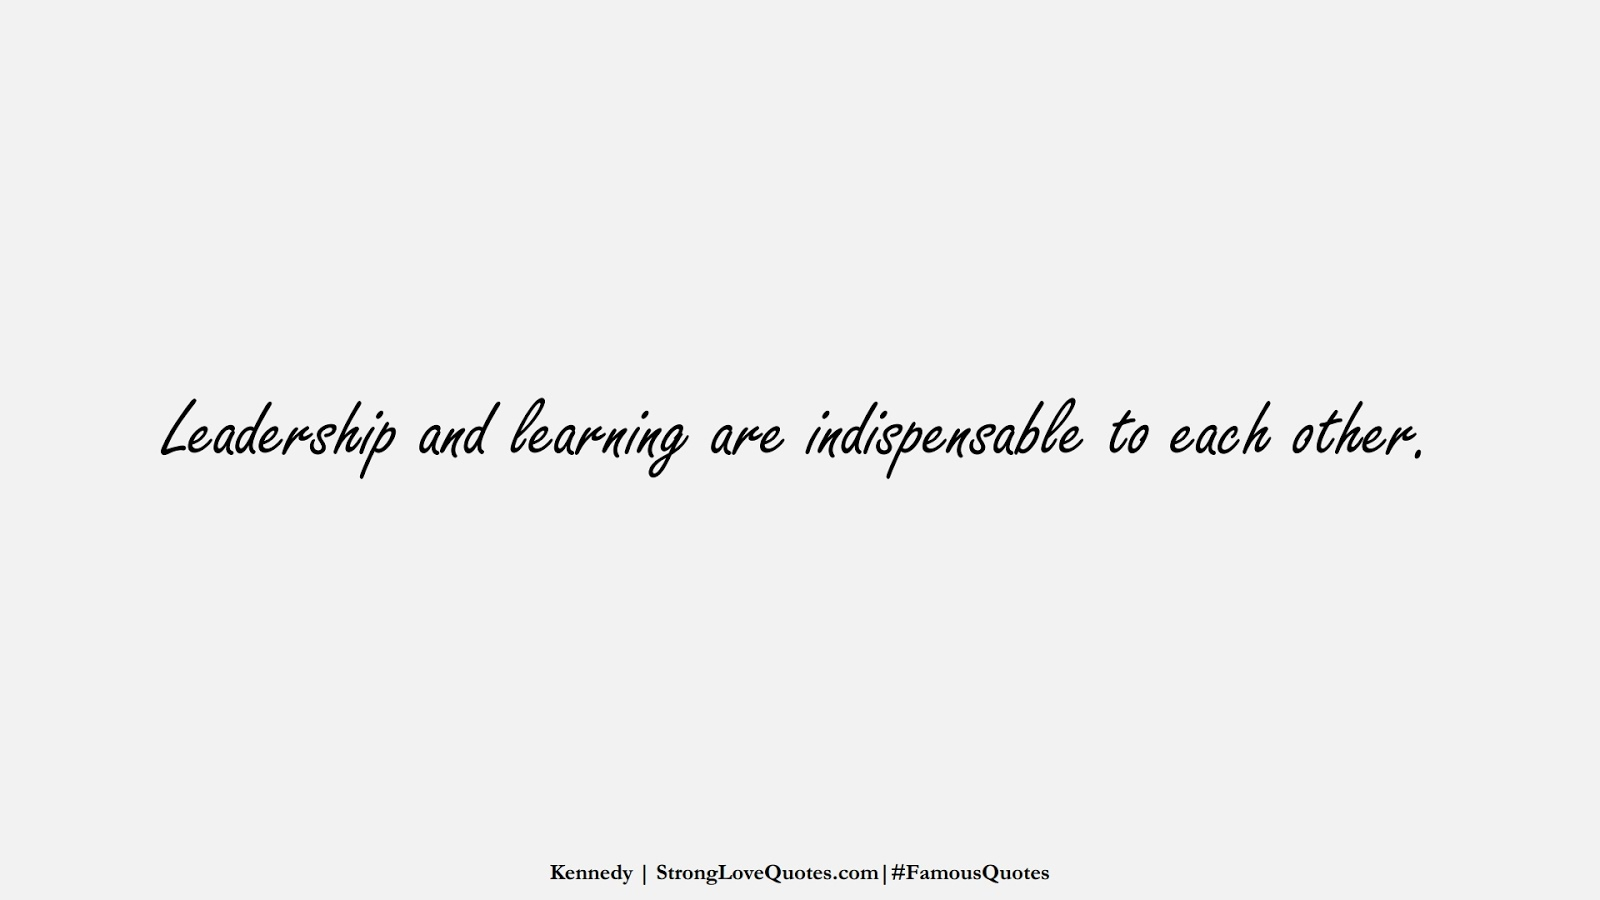 Leadership and learning are indispensable to each other. (Kennedy);  #FamousQuotes